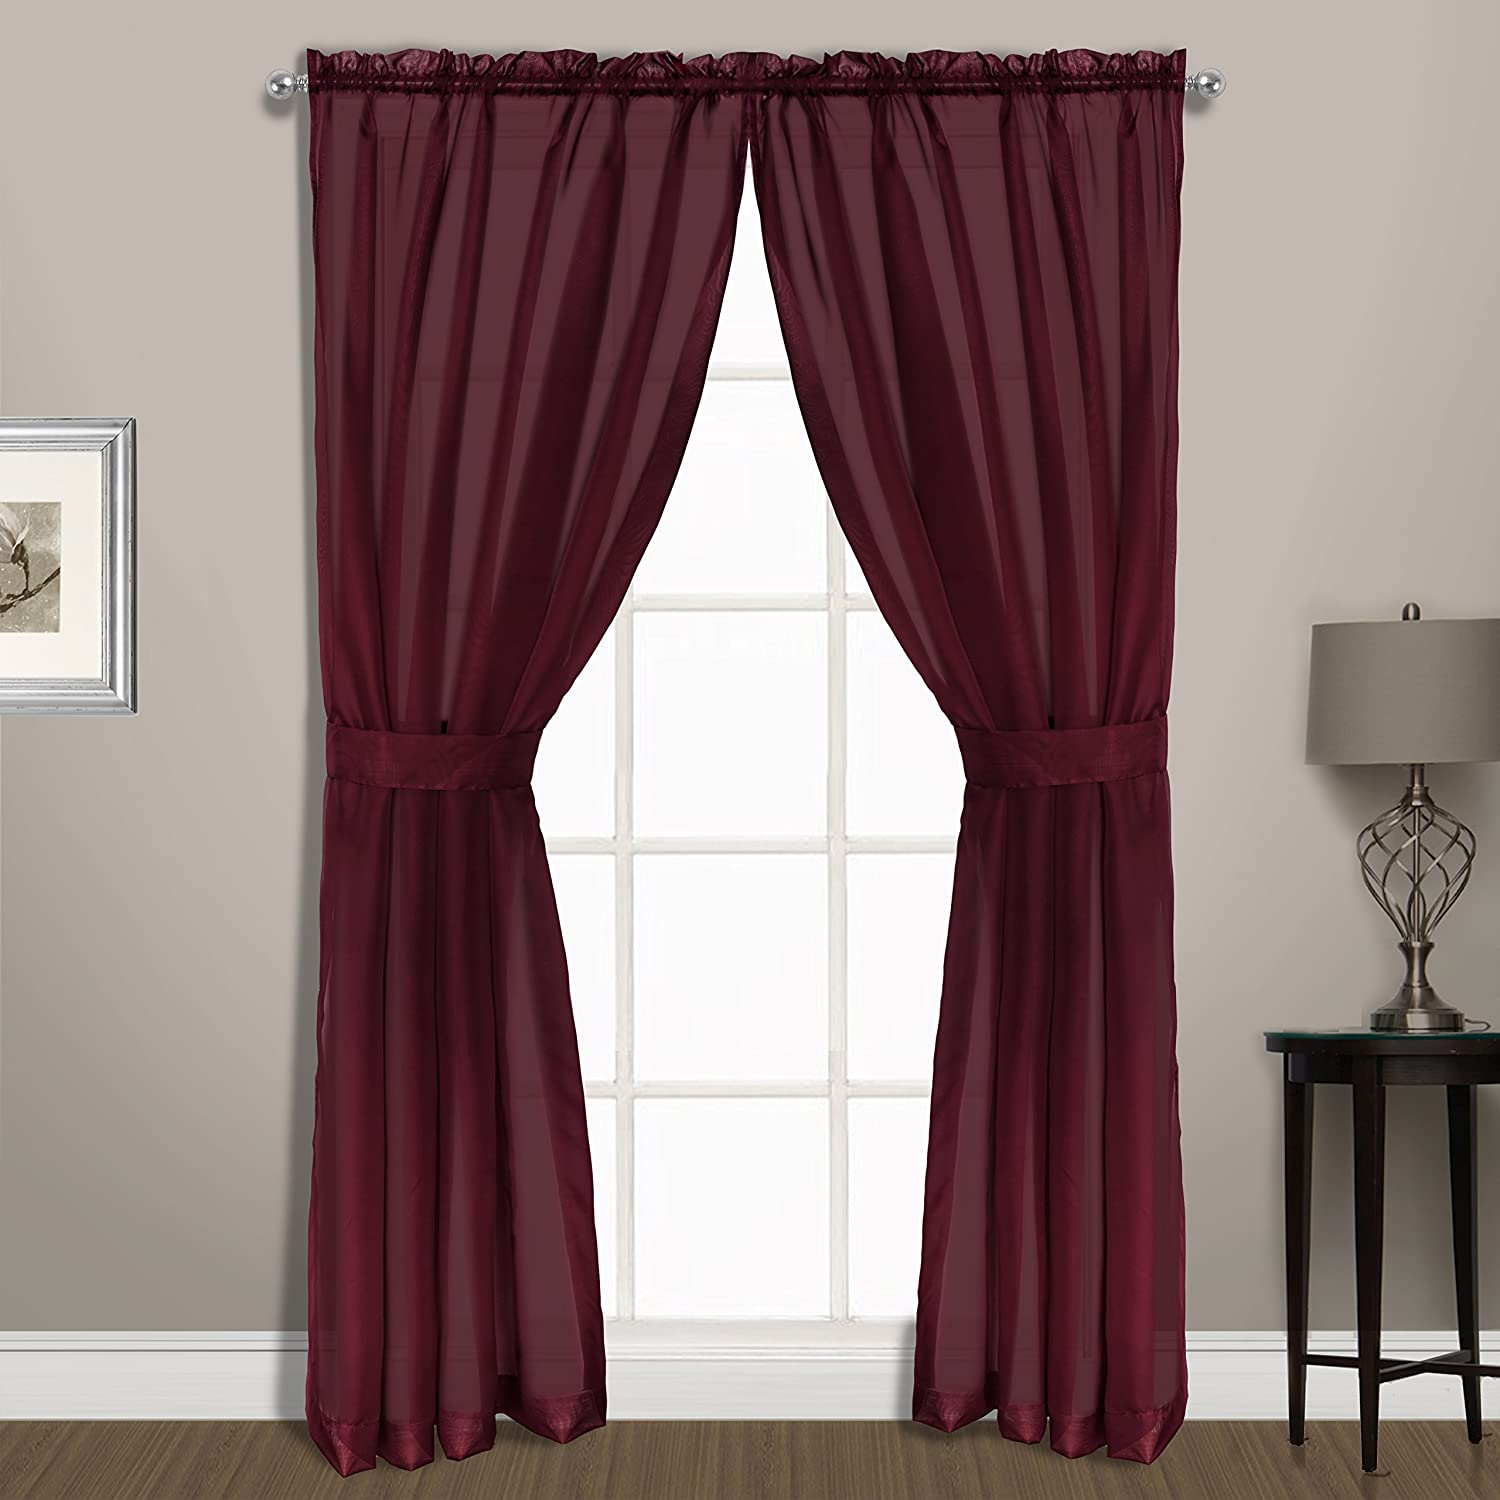 United Curtain Summit Sheer Voile Panel Pair with Tiebacks Navy 74 x 72